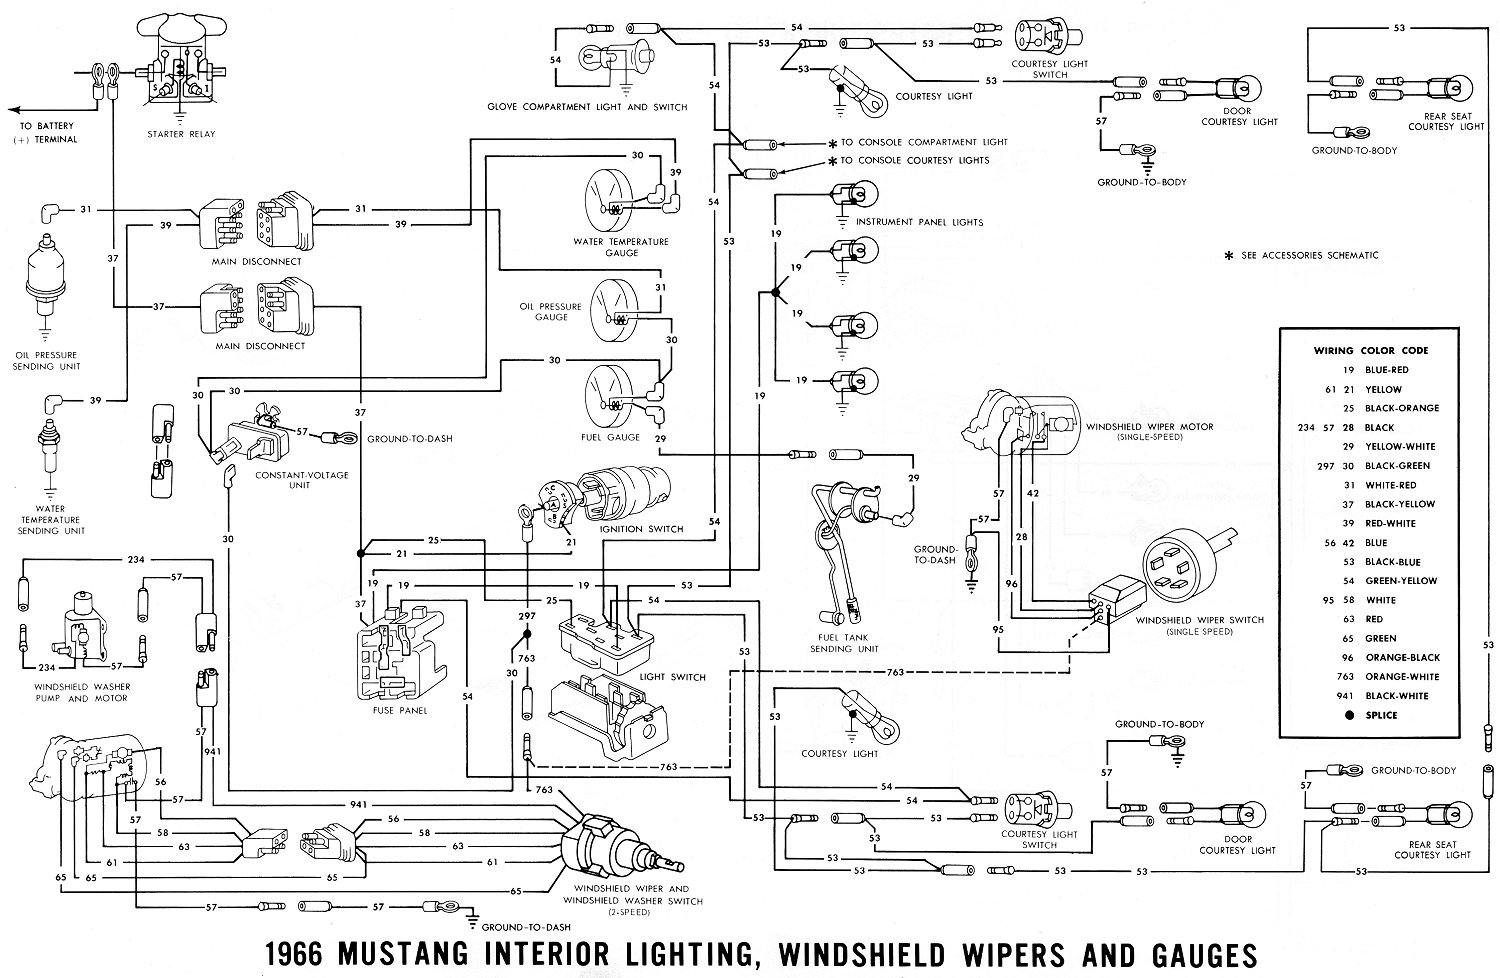 66inter1 1966 mustang wiring diagrams average joe restoration 66 mustang wiring harness at virtualis.co